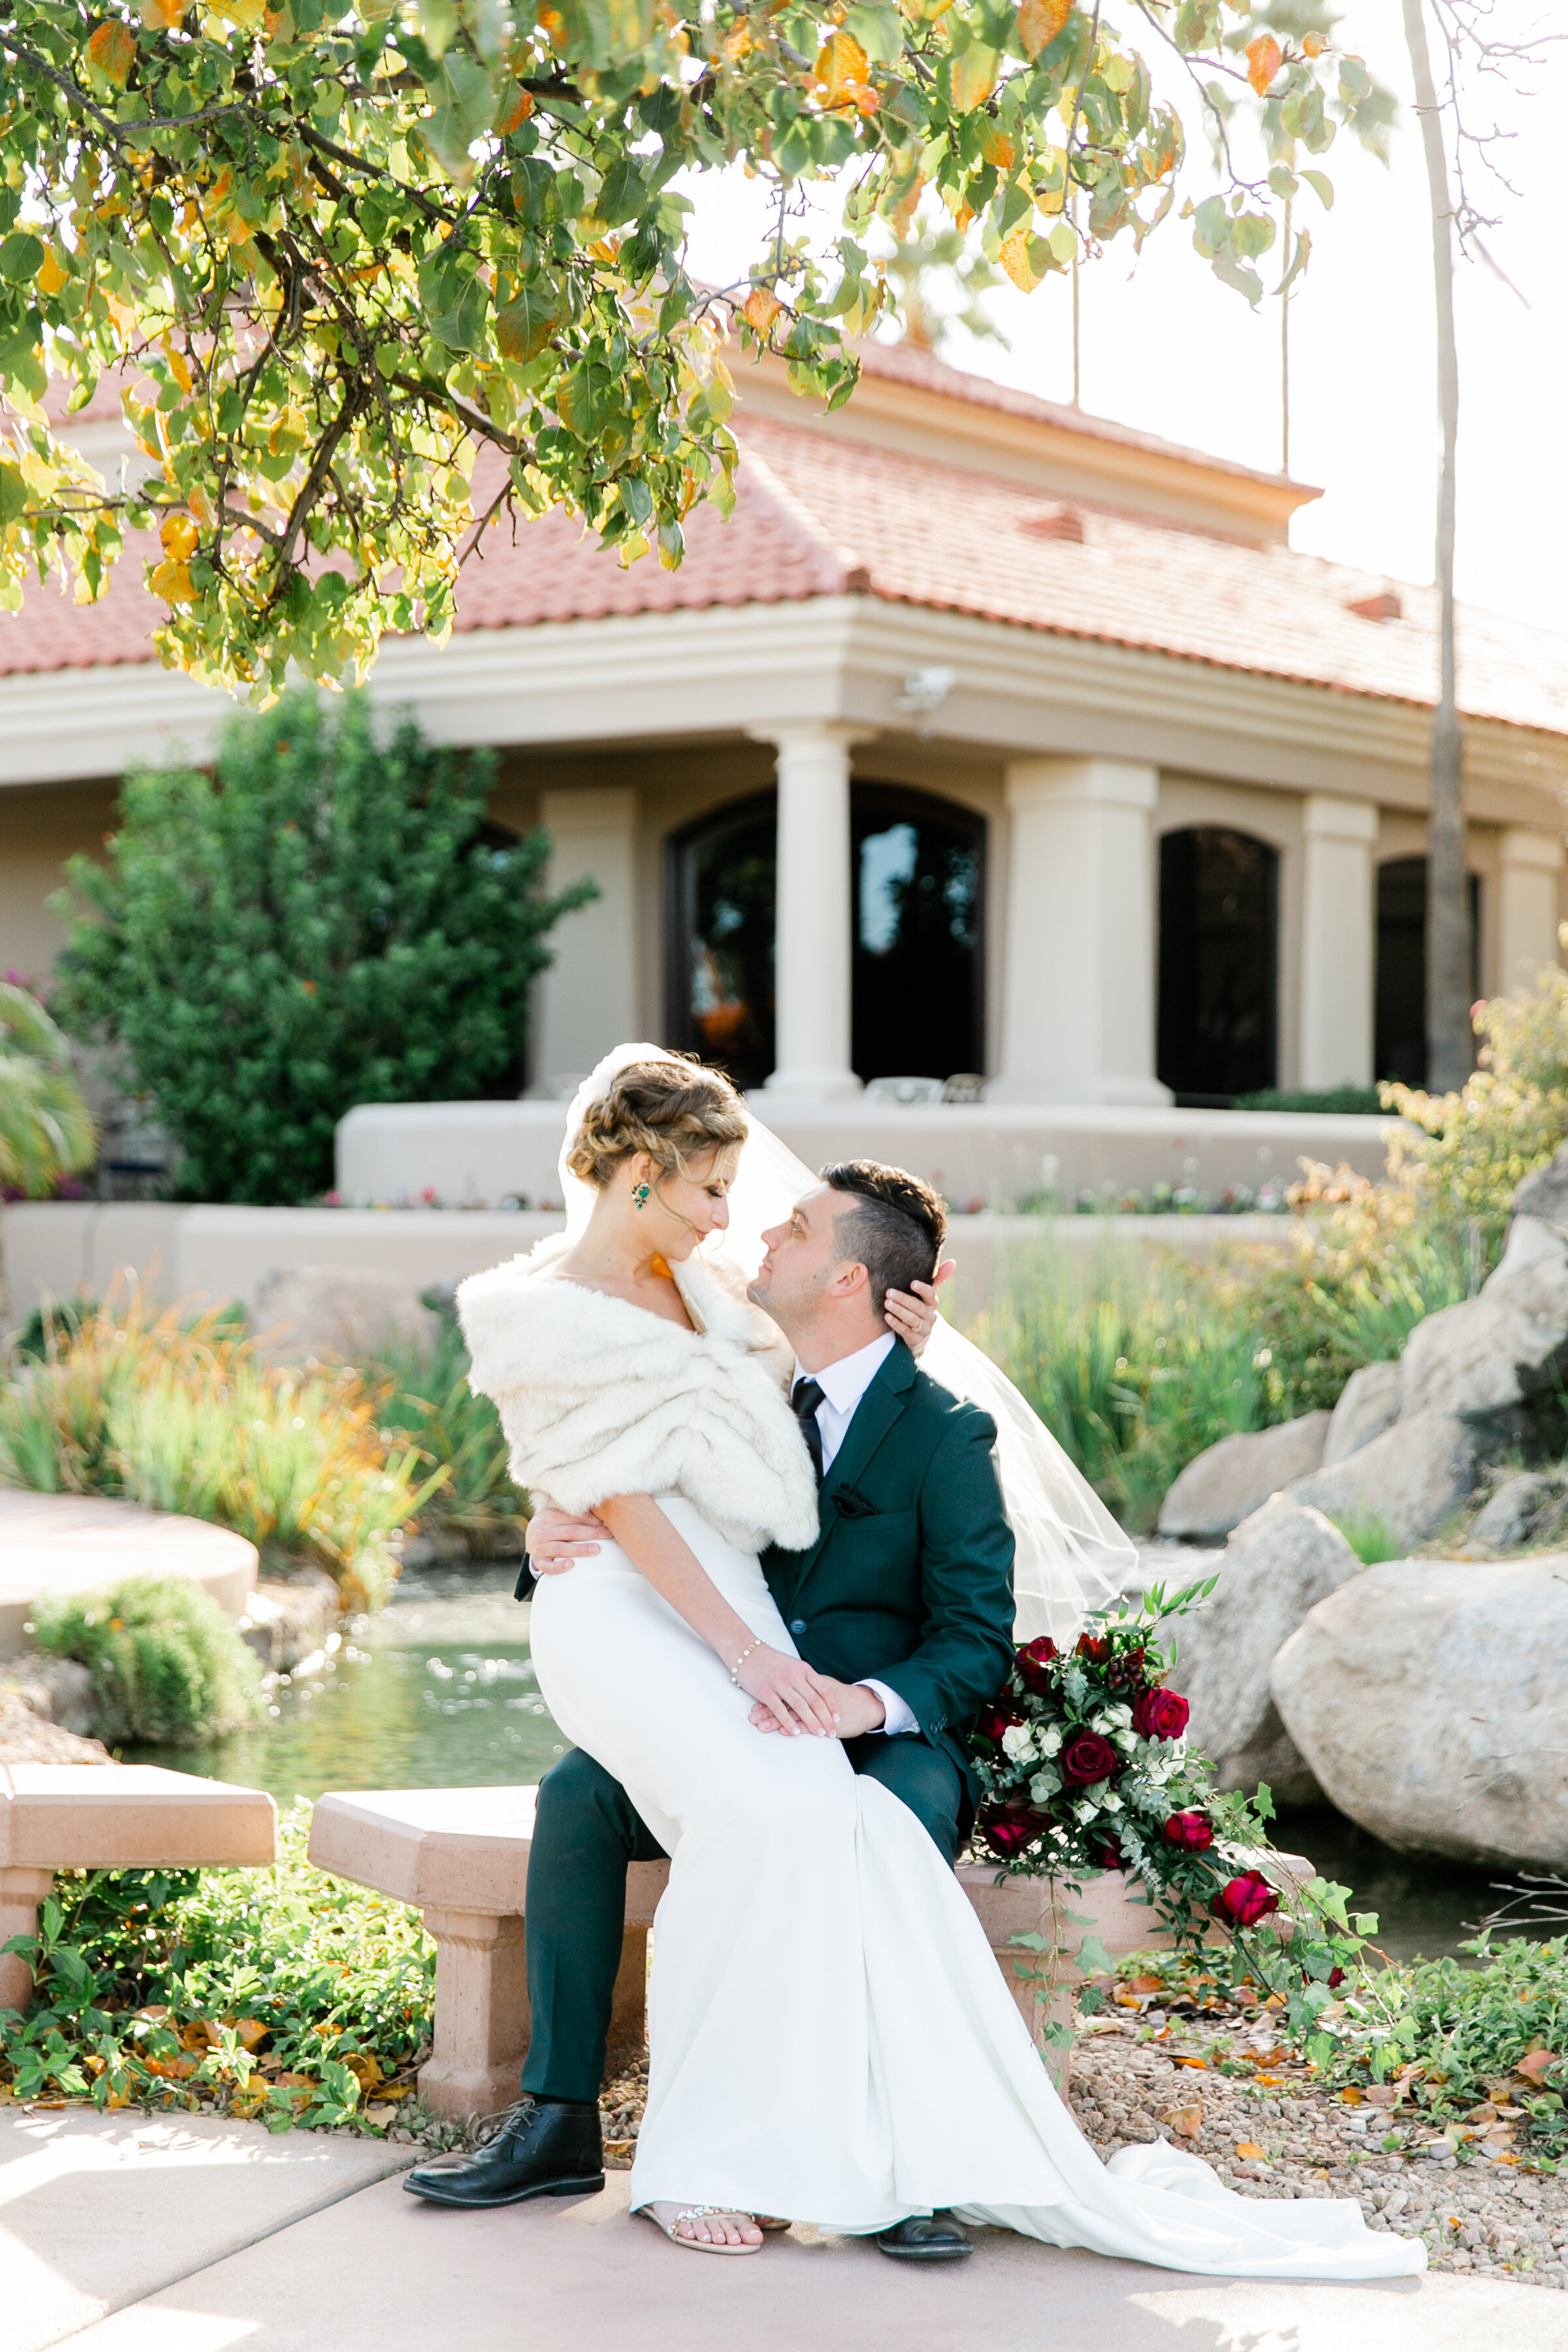 Karlie Colleen Photography - Gilbert Arizona Wedding - Val Vista Lakes - Brynne & Josh-452